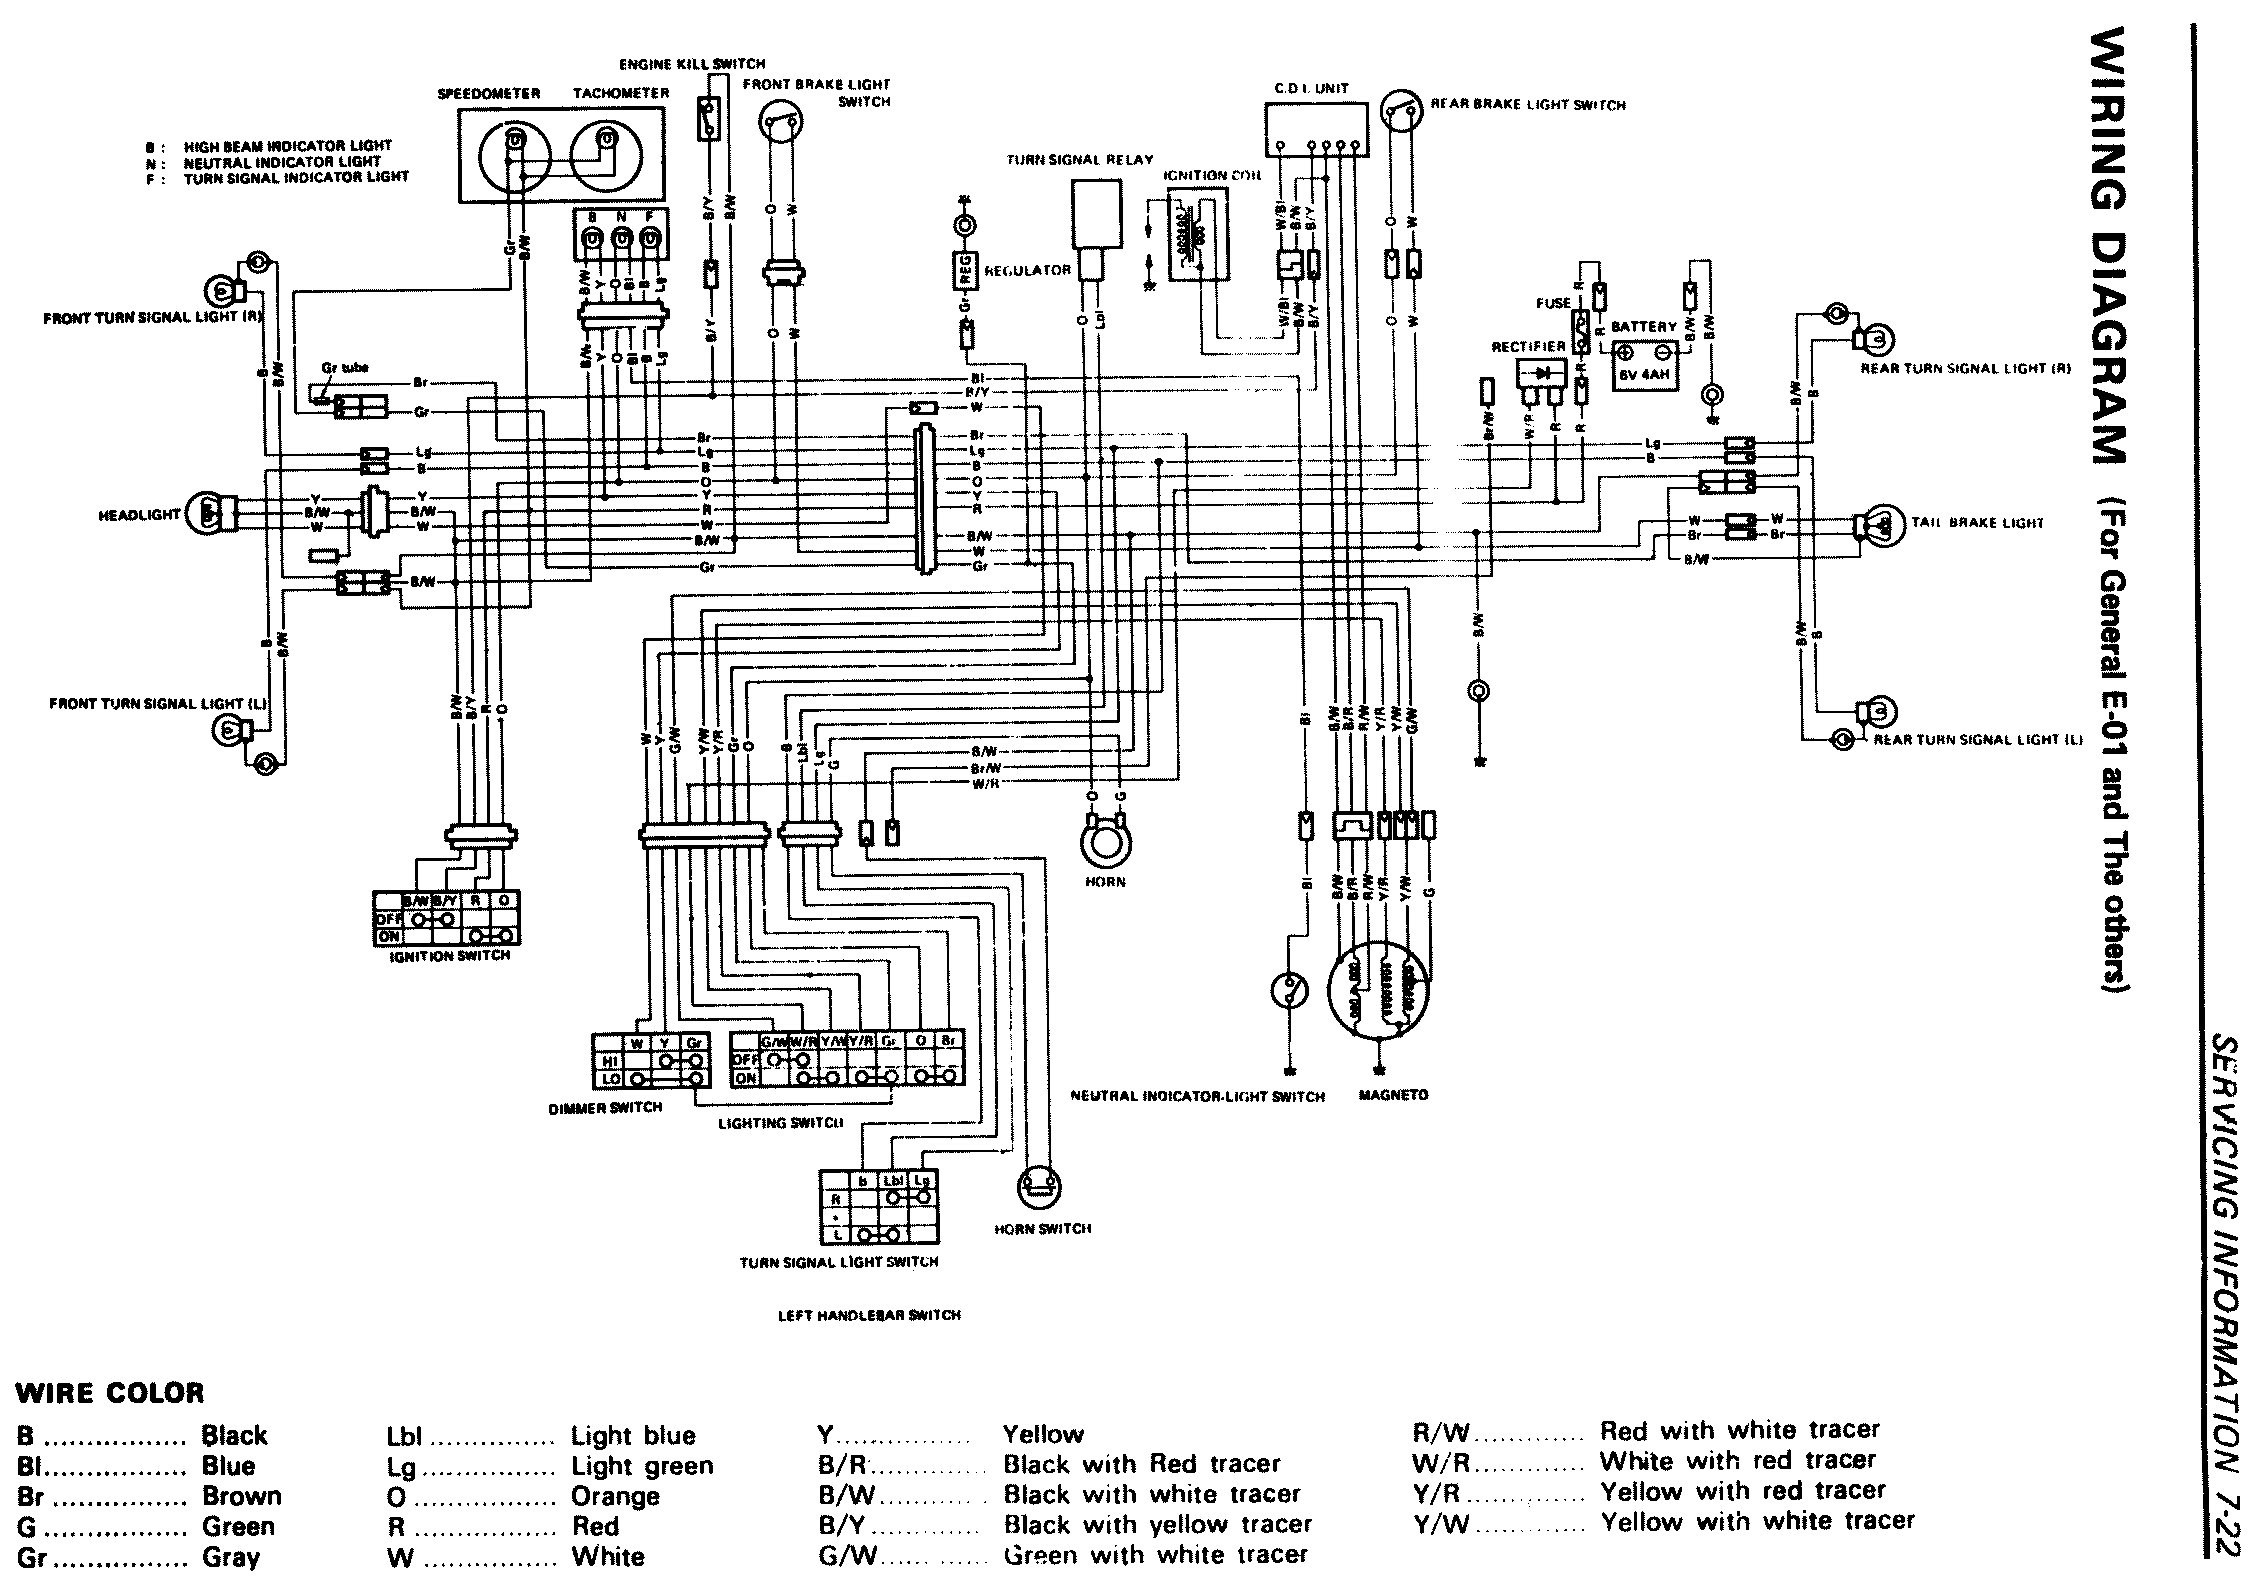 98 Rmx 250 Wiring Diagram